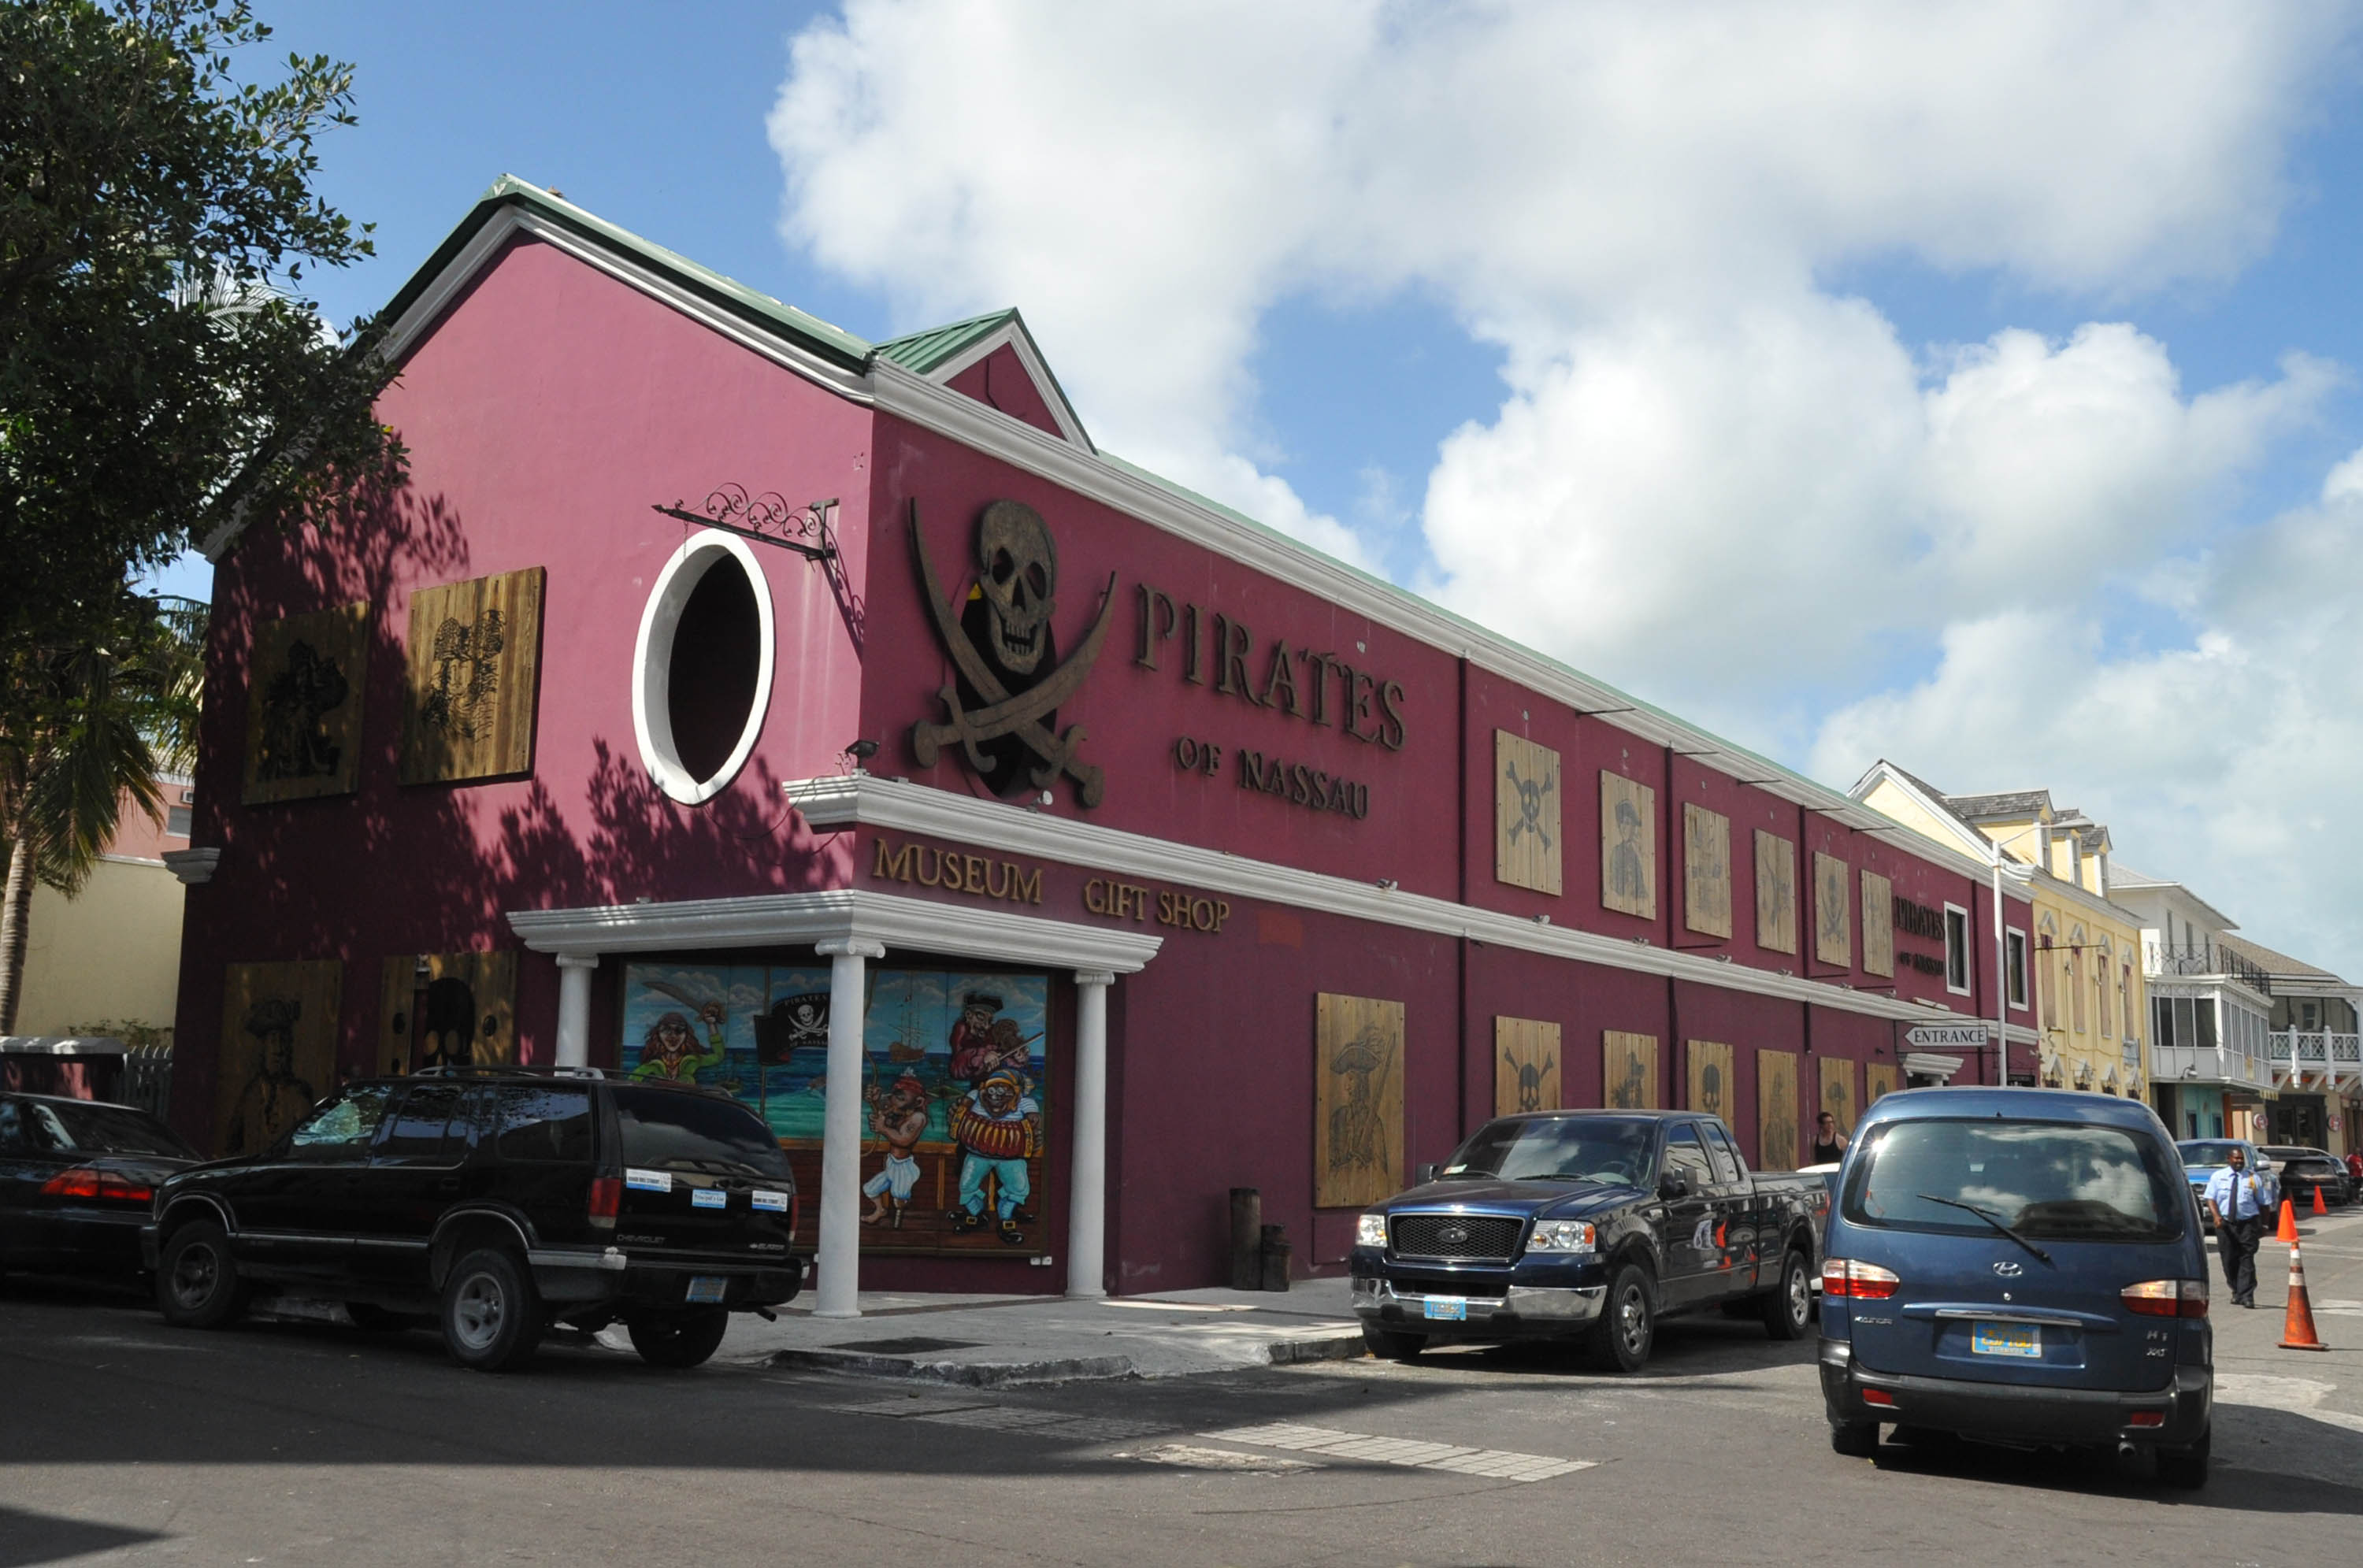 6 Reasons To Visit The Pirates of Nassau Museum